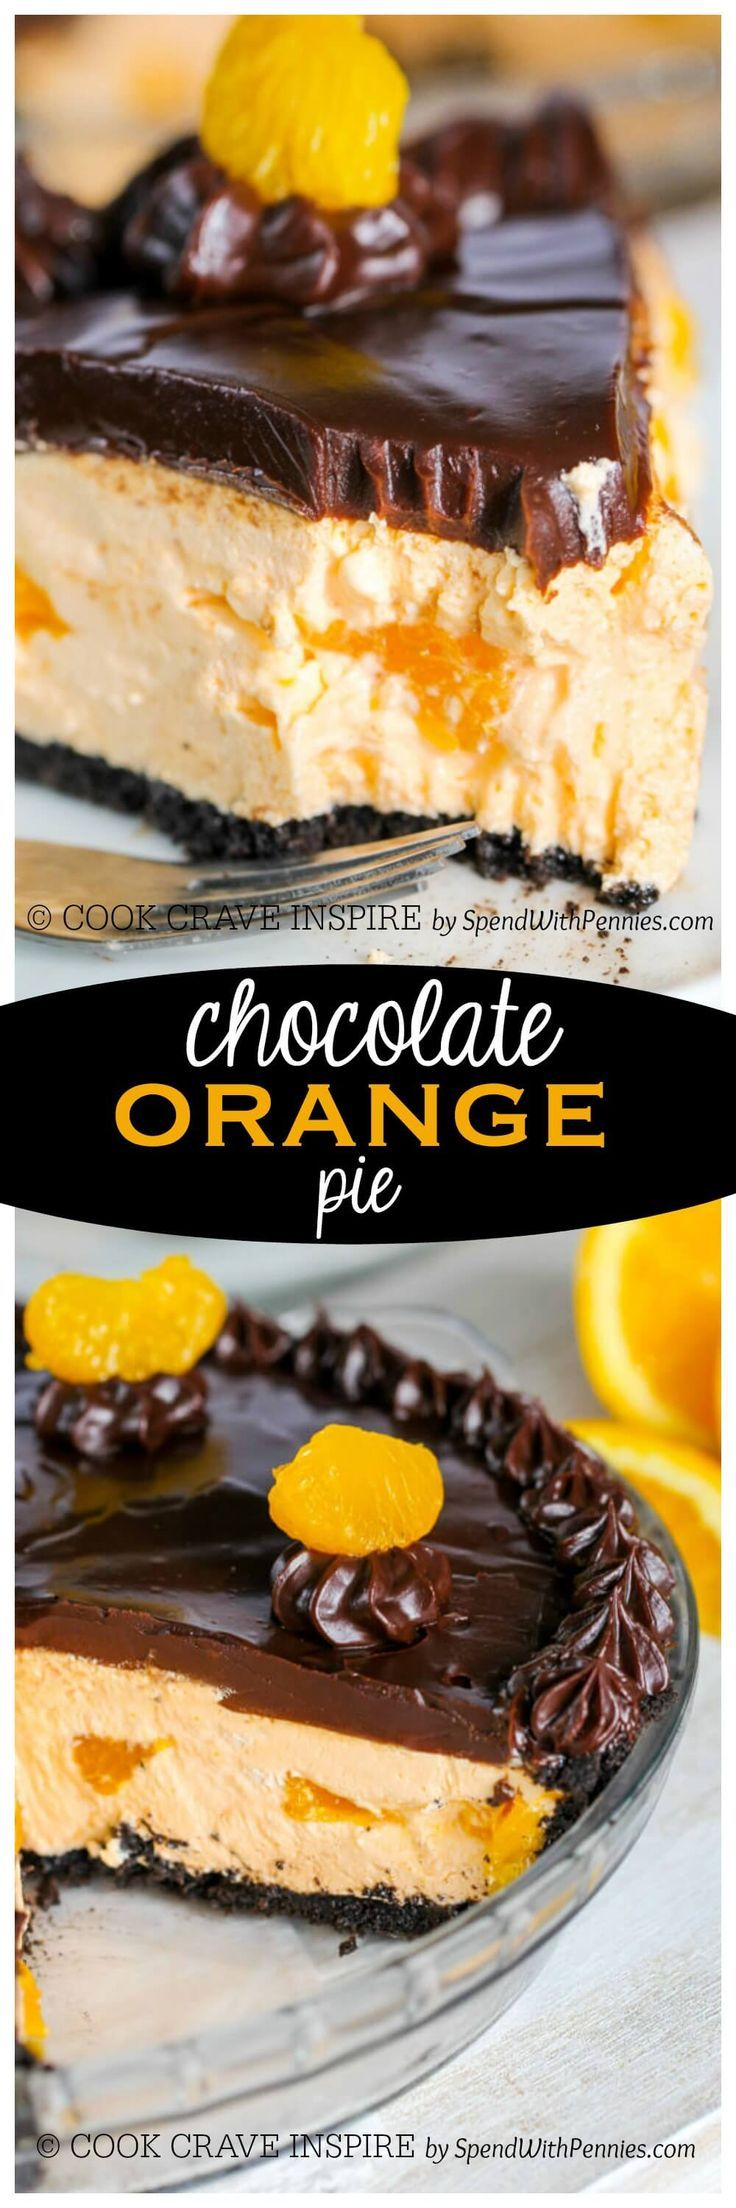 Chocolate Orange Pie! (This is my favorite pie)! This easy no bake dessert starts with an Oreo cookie crust filled with a fluffy orange cream filling and is topped with a rich chocolate ganache! ♥